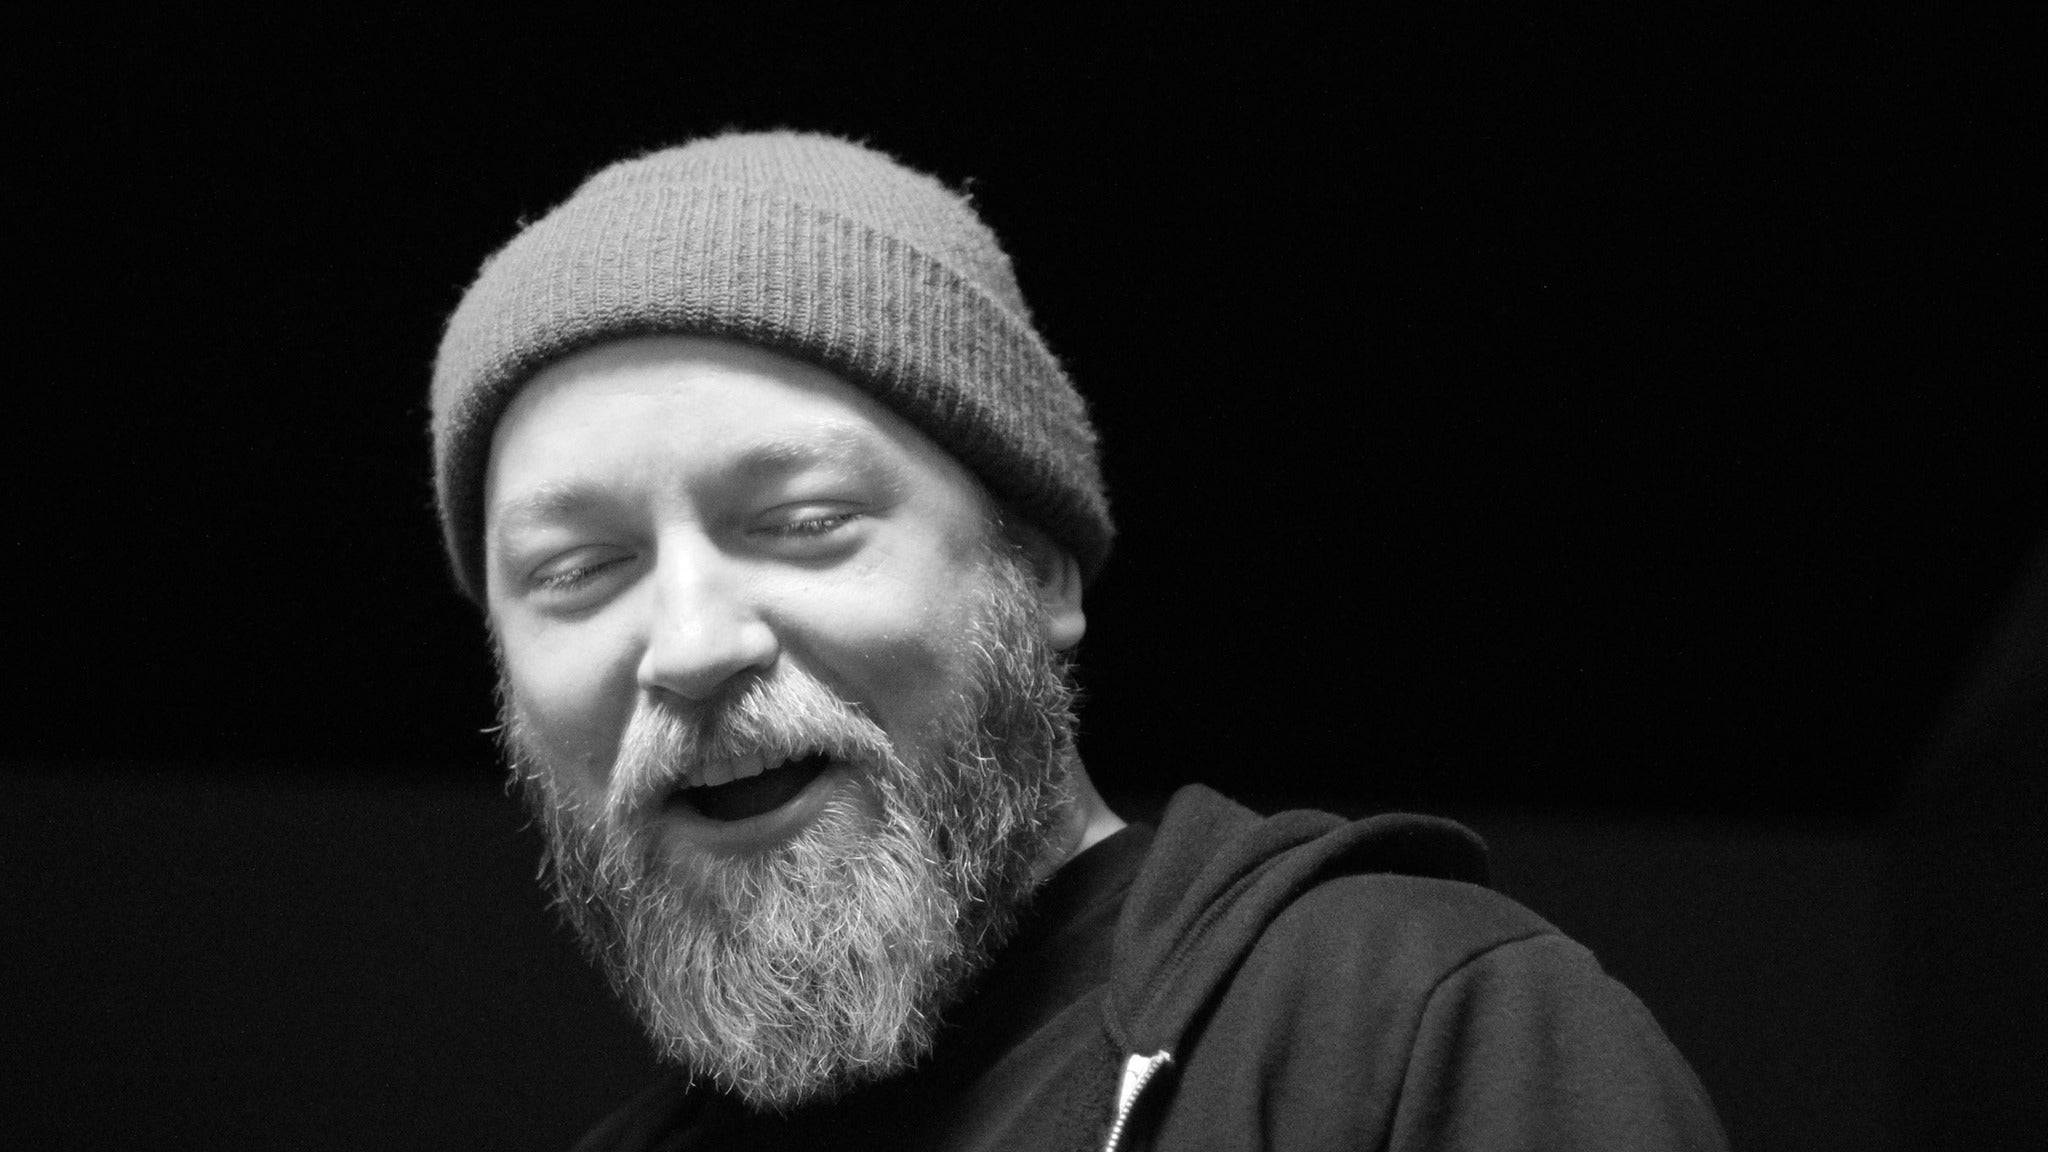 Kyle Kinane at Canopy